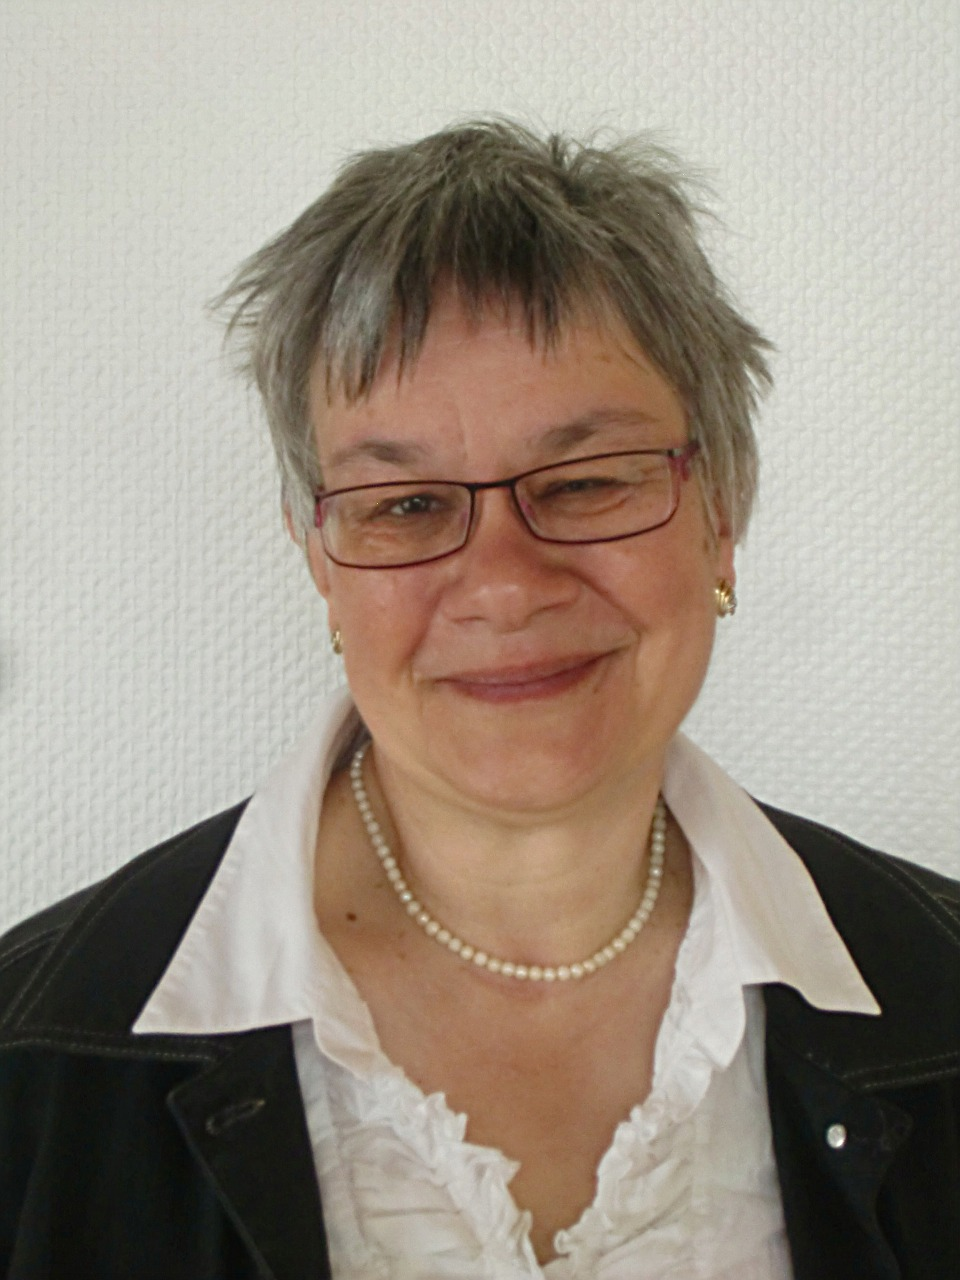 martina fleckenstein